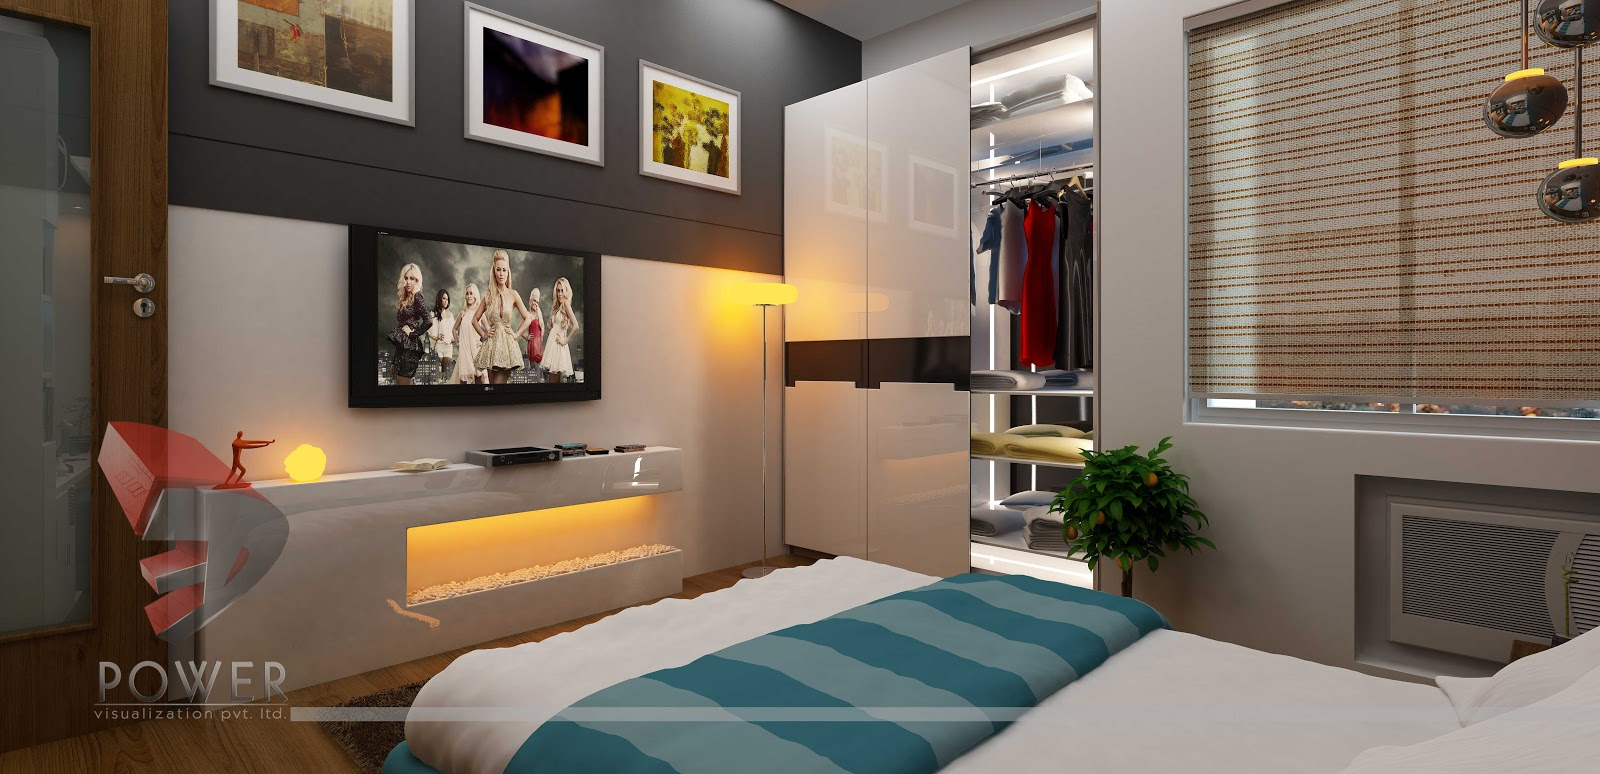 Interior Design For Apartments In India